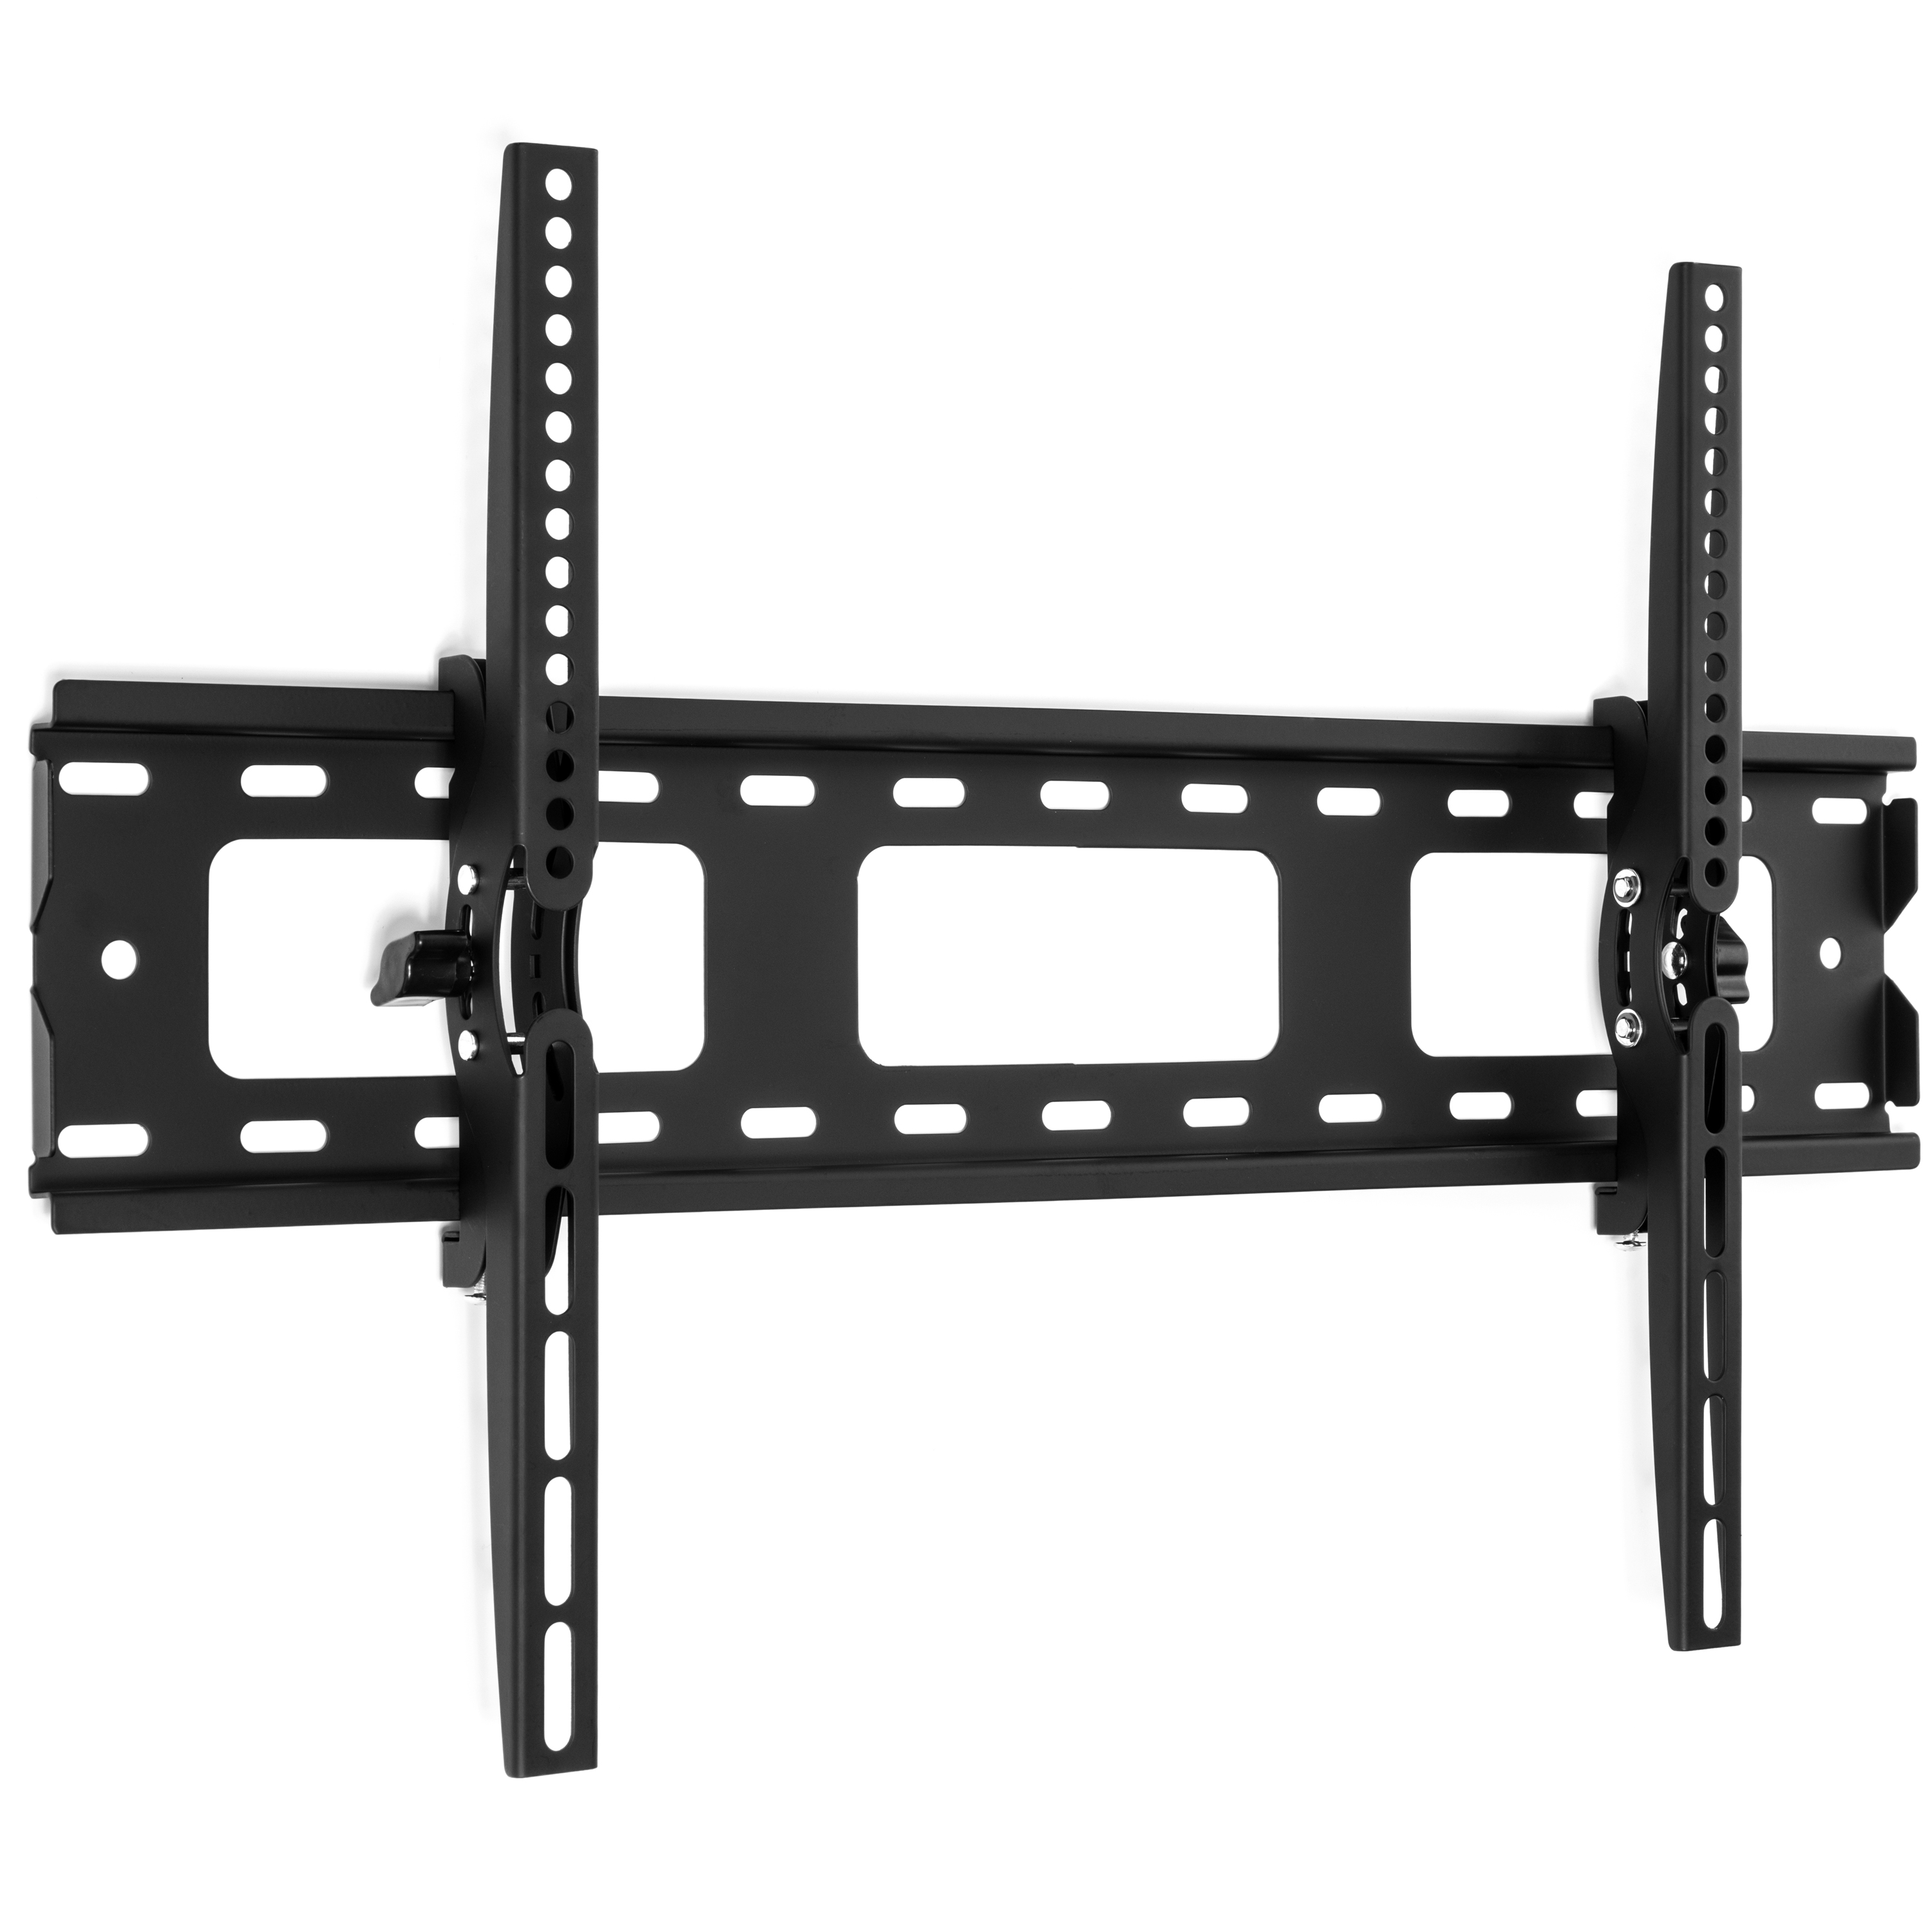 "MWGEARS Tilting TV Wall Mount for 37"" to 82"" TVs (TWM20T)"